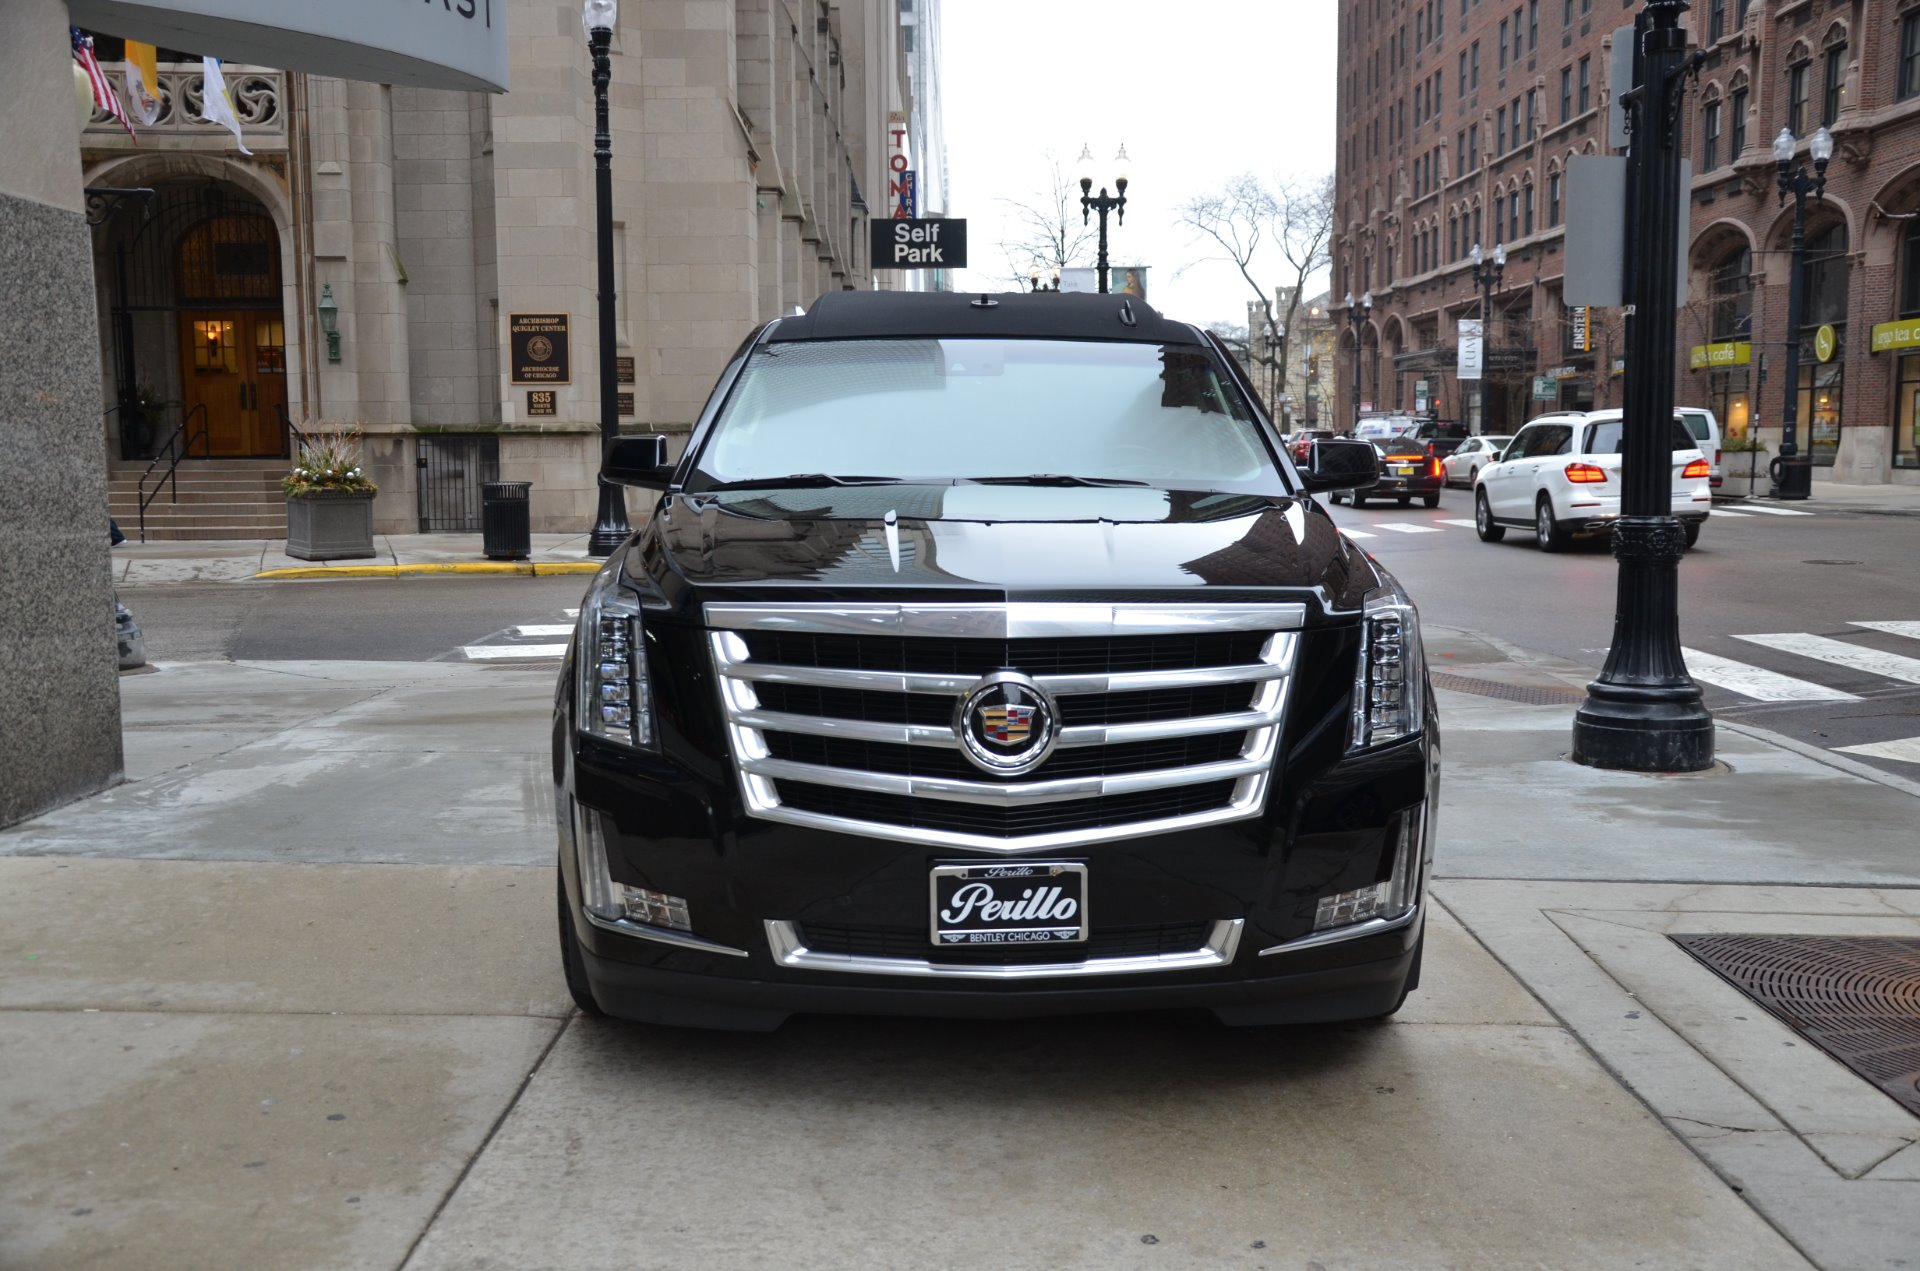 2015 cadillac escalade esv ceo limosine stock gc roland156 for sale near chicago il il. Black Bedroom Furniture Sets. Home Design Ideas